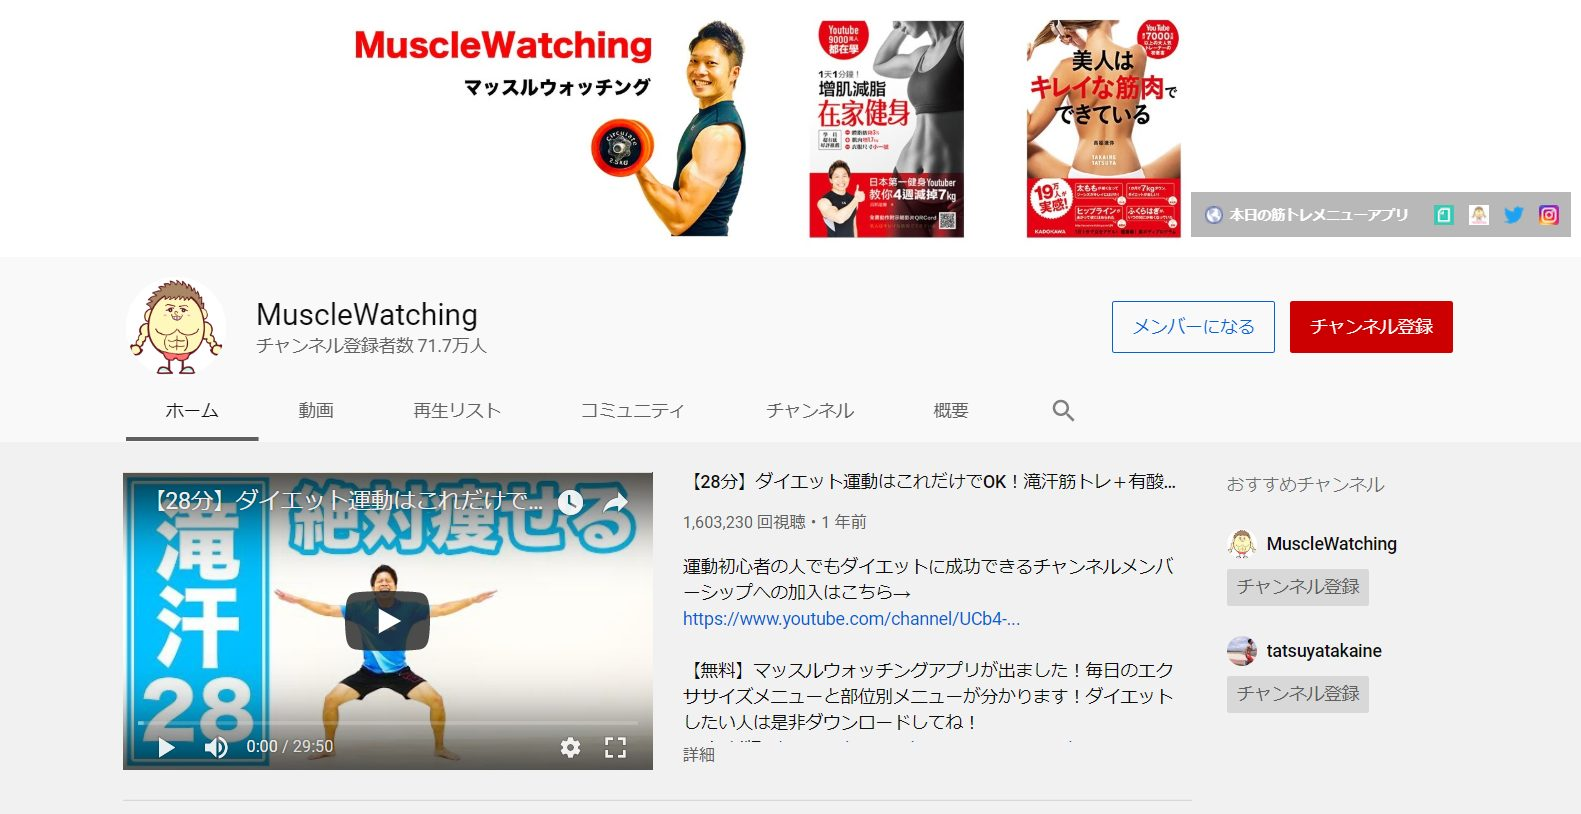 youtube-diet-influencer-muscle-watching